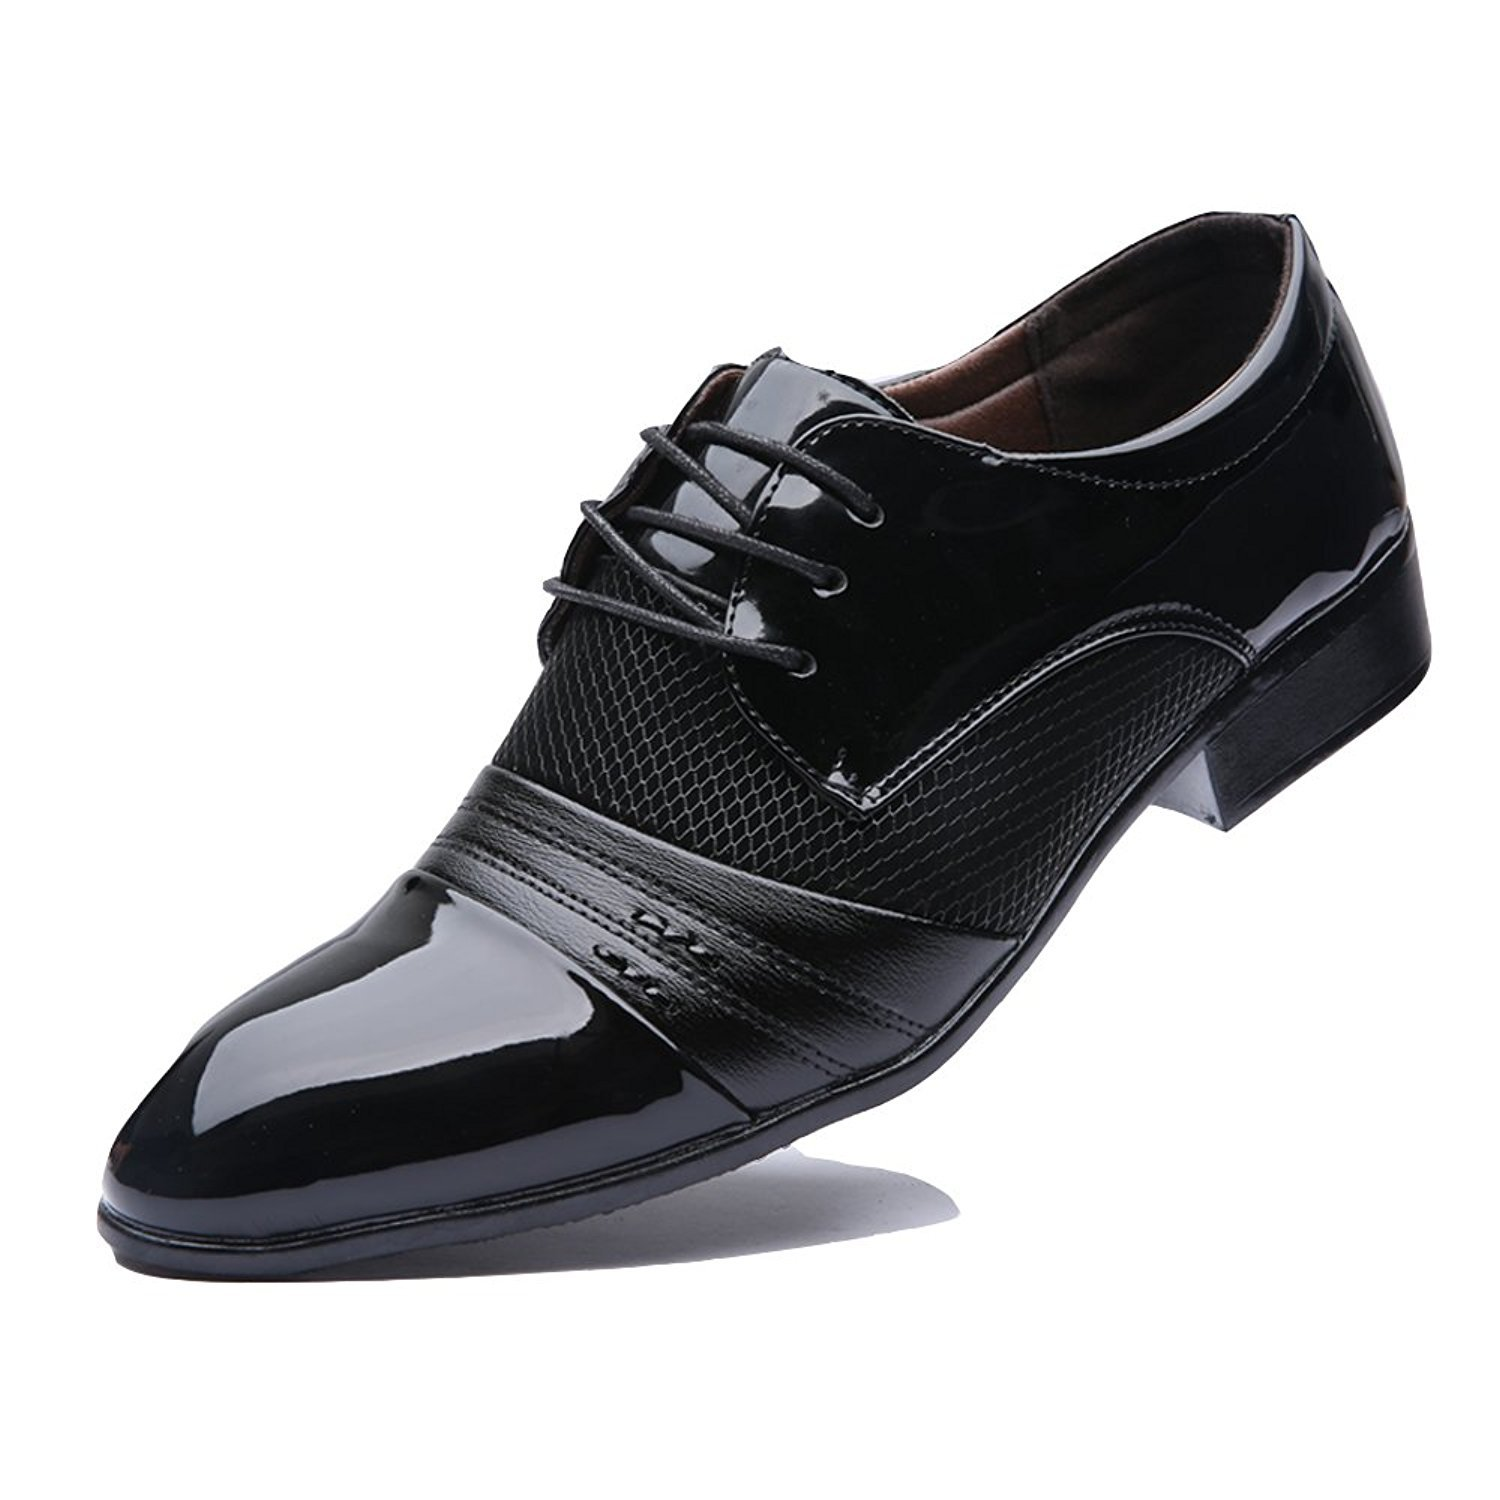 Xiakolaka Men's Breathable Mesh Dress Shoes Sleek Classic Oxford Black US 8